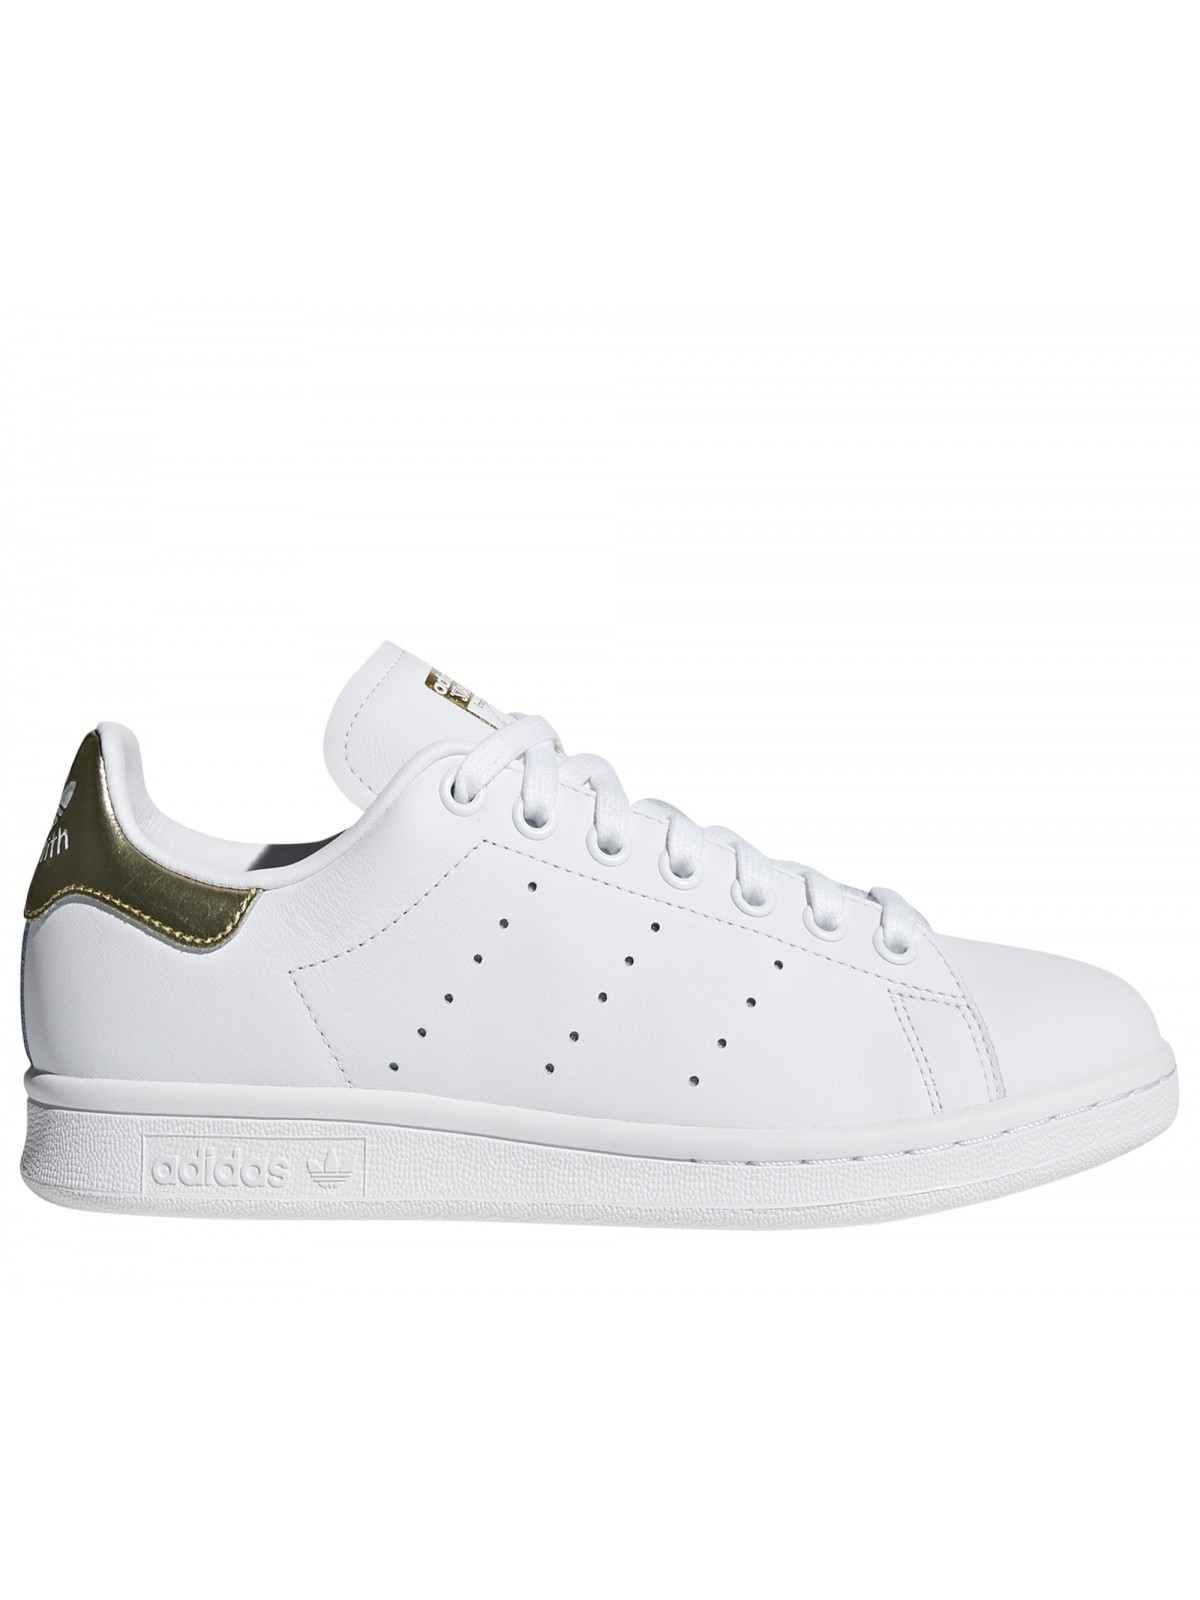 ADIDAS Stan Smith cuir ormeta